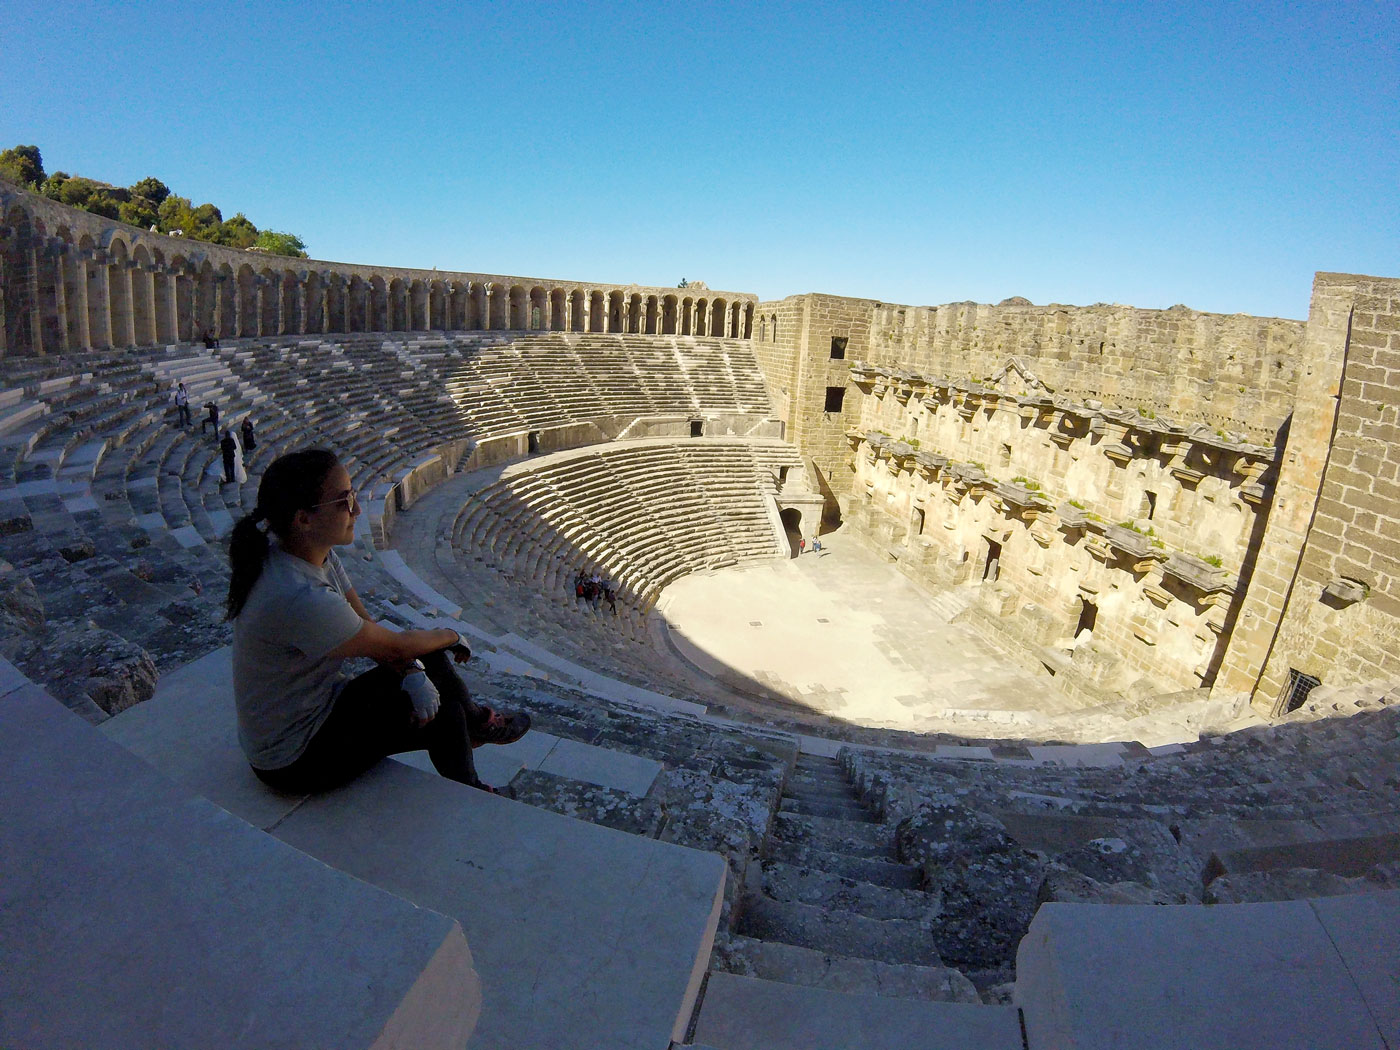 Turkey by bike, the Aspendos Roman Theater. Cycling Turquey, Aspendos theater.